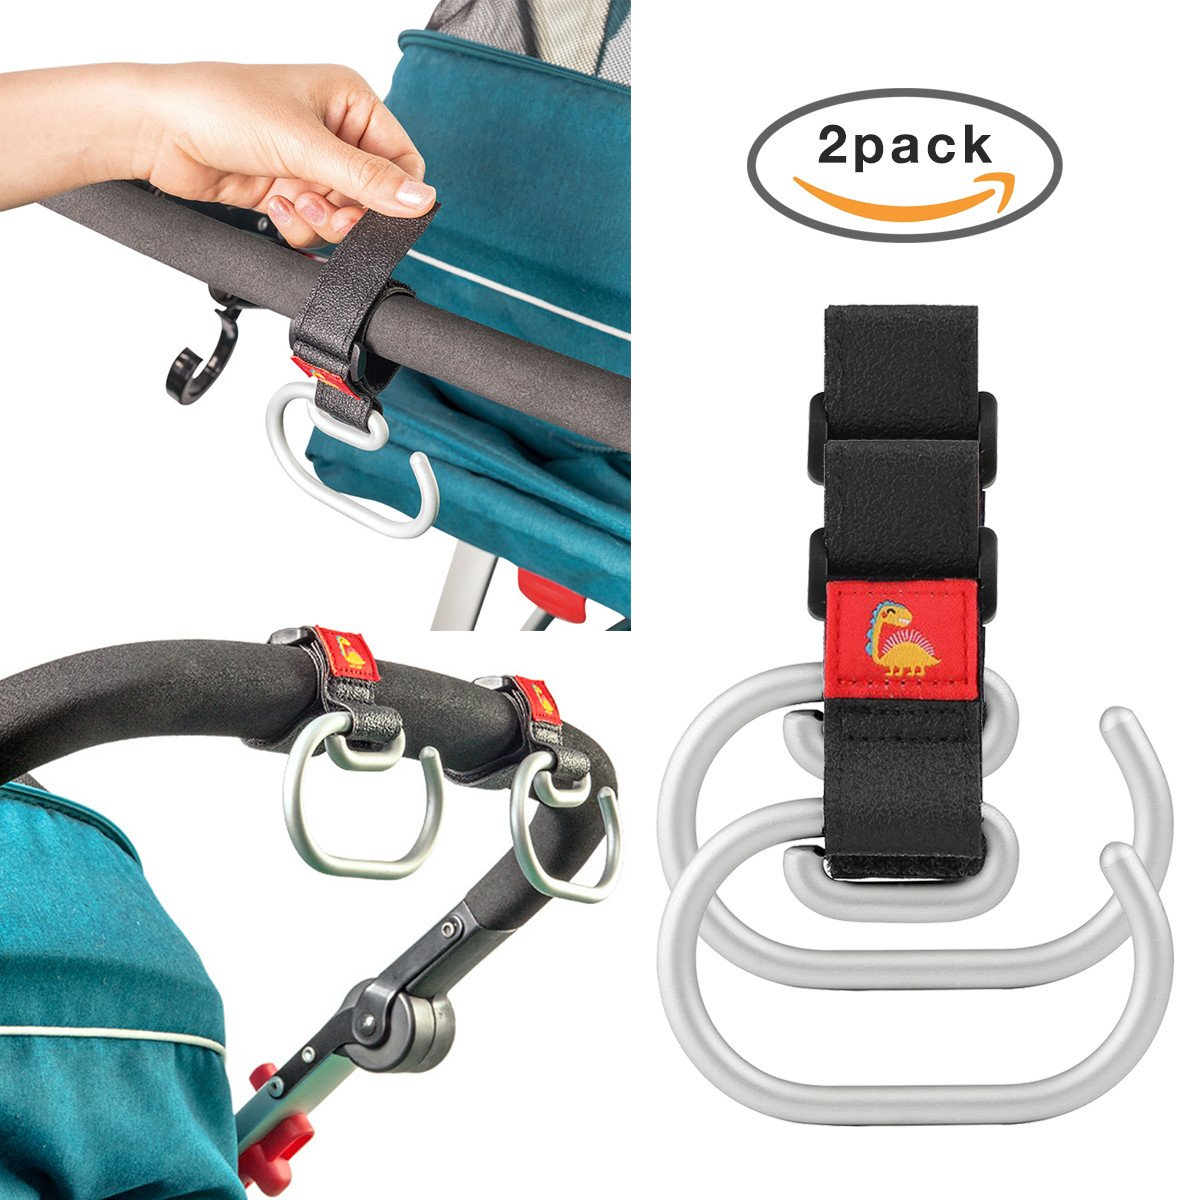 Stroller Hooks for Diaper Organizer, Great Strength Shopping Bags Carrier, 2 of Set by YIIGO (Image #1)